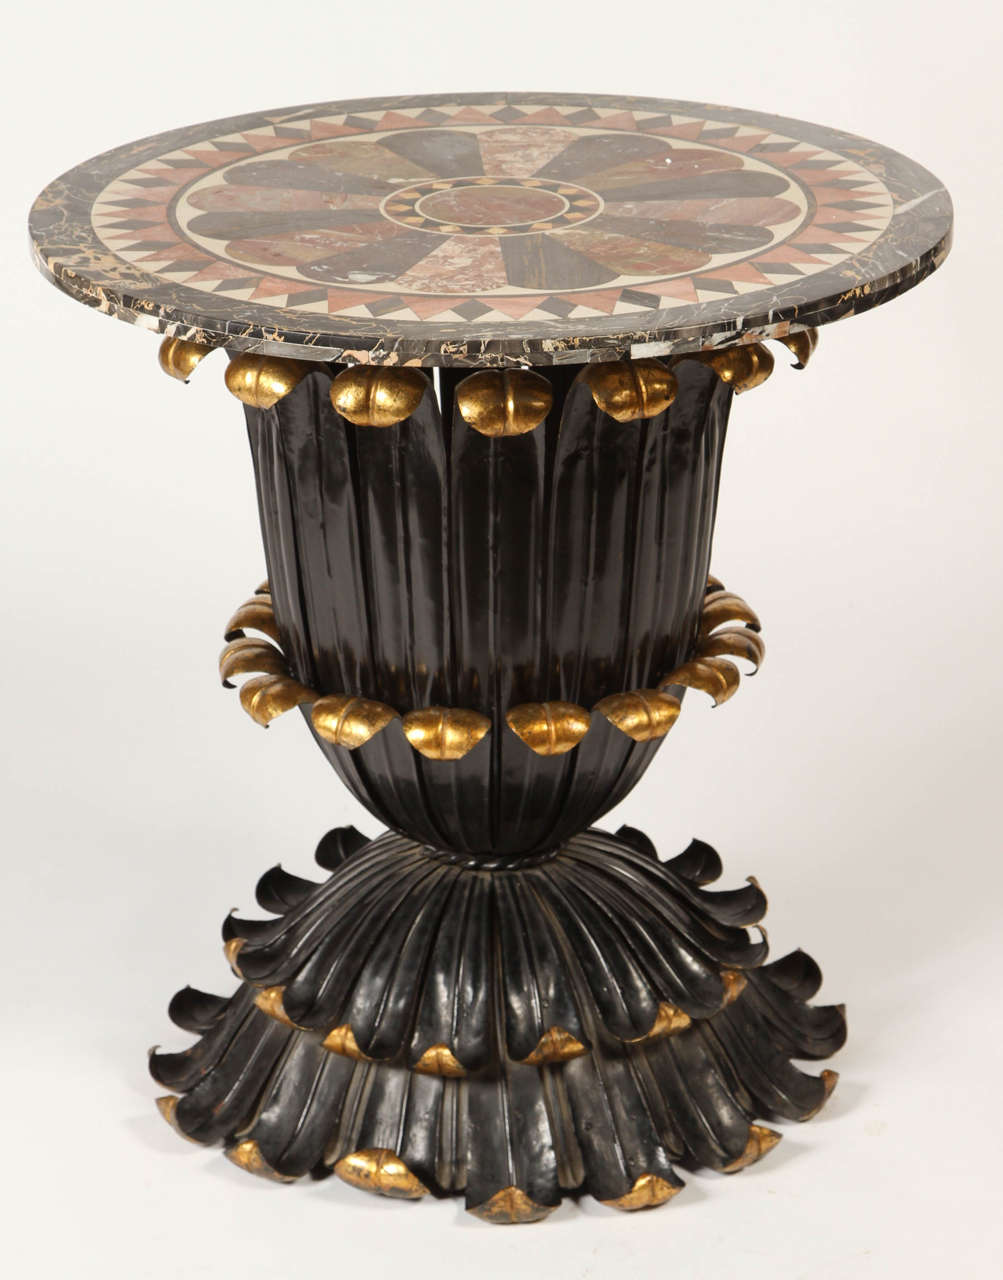 This stunning table from the late 19th century has a fantastic marble specimen top and a painted and gilt foliage-inspired base. The deep color palette contrasts wonderfully with the feminine organic silhouette. This table would be perfect for a